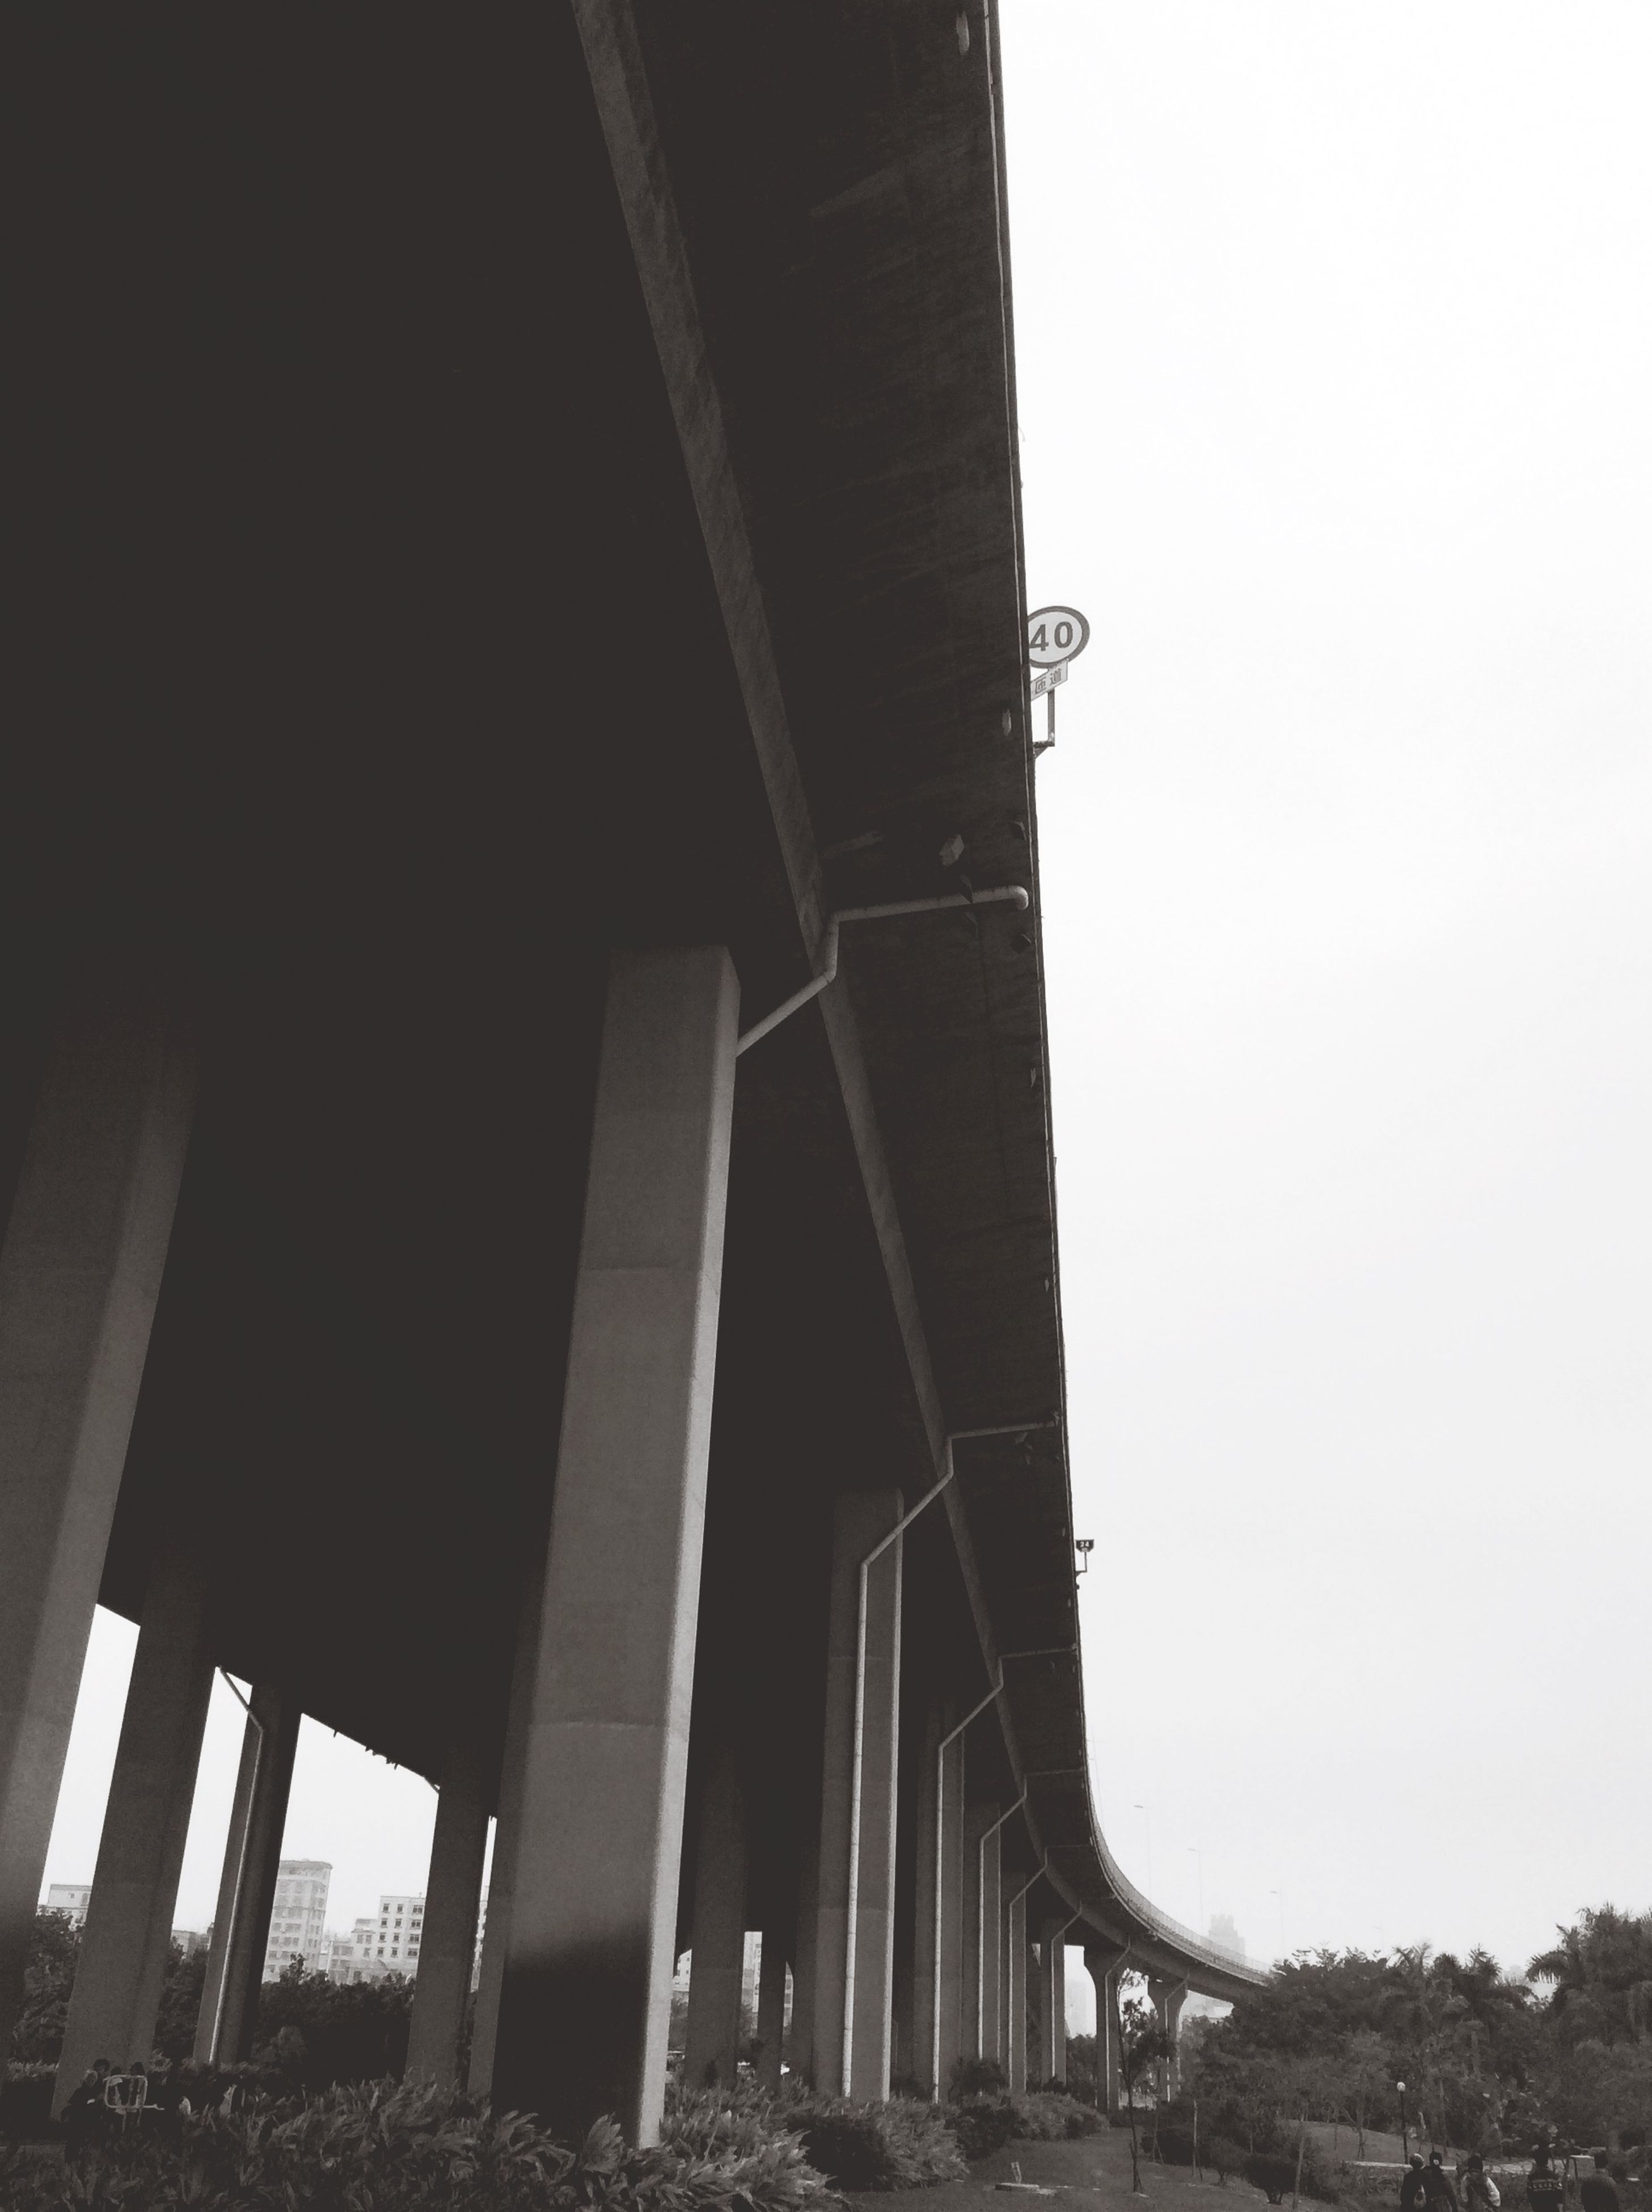 architecture, built structure, clear sky, bridge - man made structure, connection, low angle view, building exterior, copy space, transportation, engineering, bridge, architectural column, sky, outdoors, city, day, no people, arch, column, suspension bridge